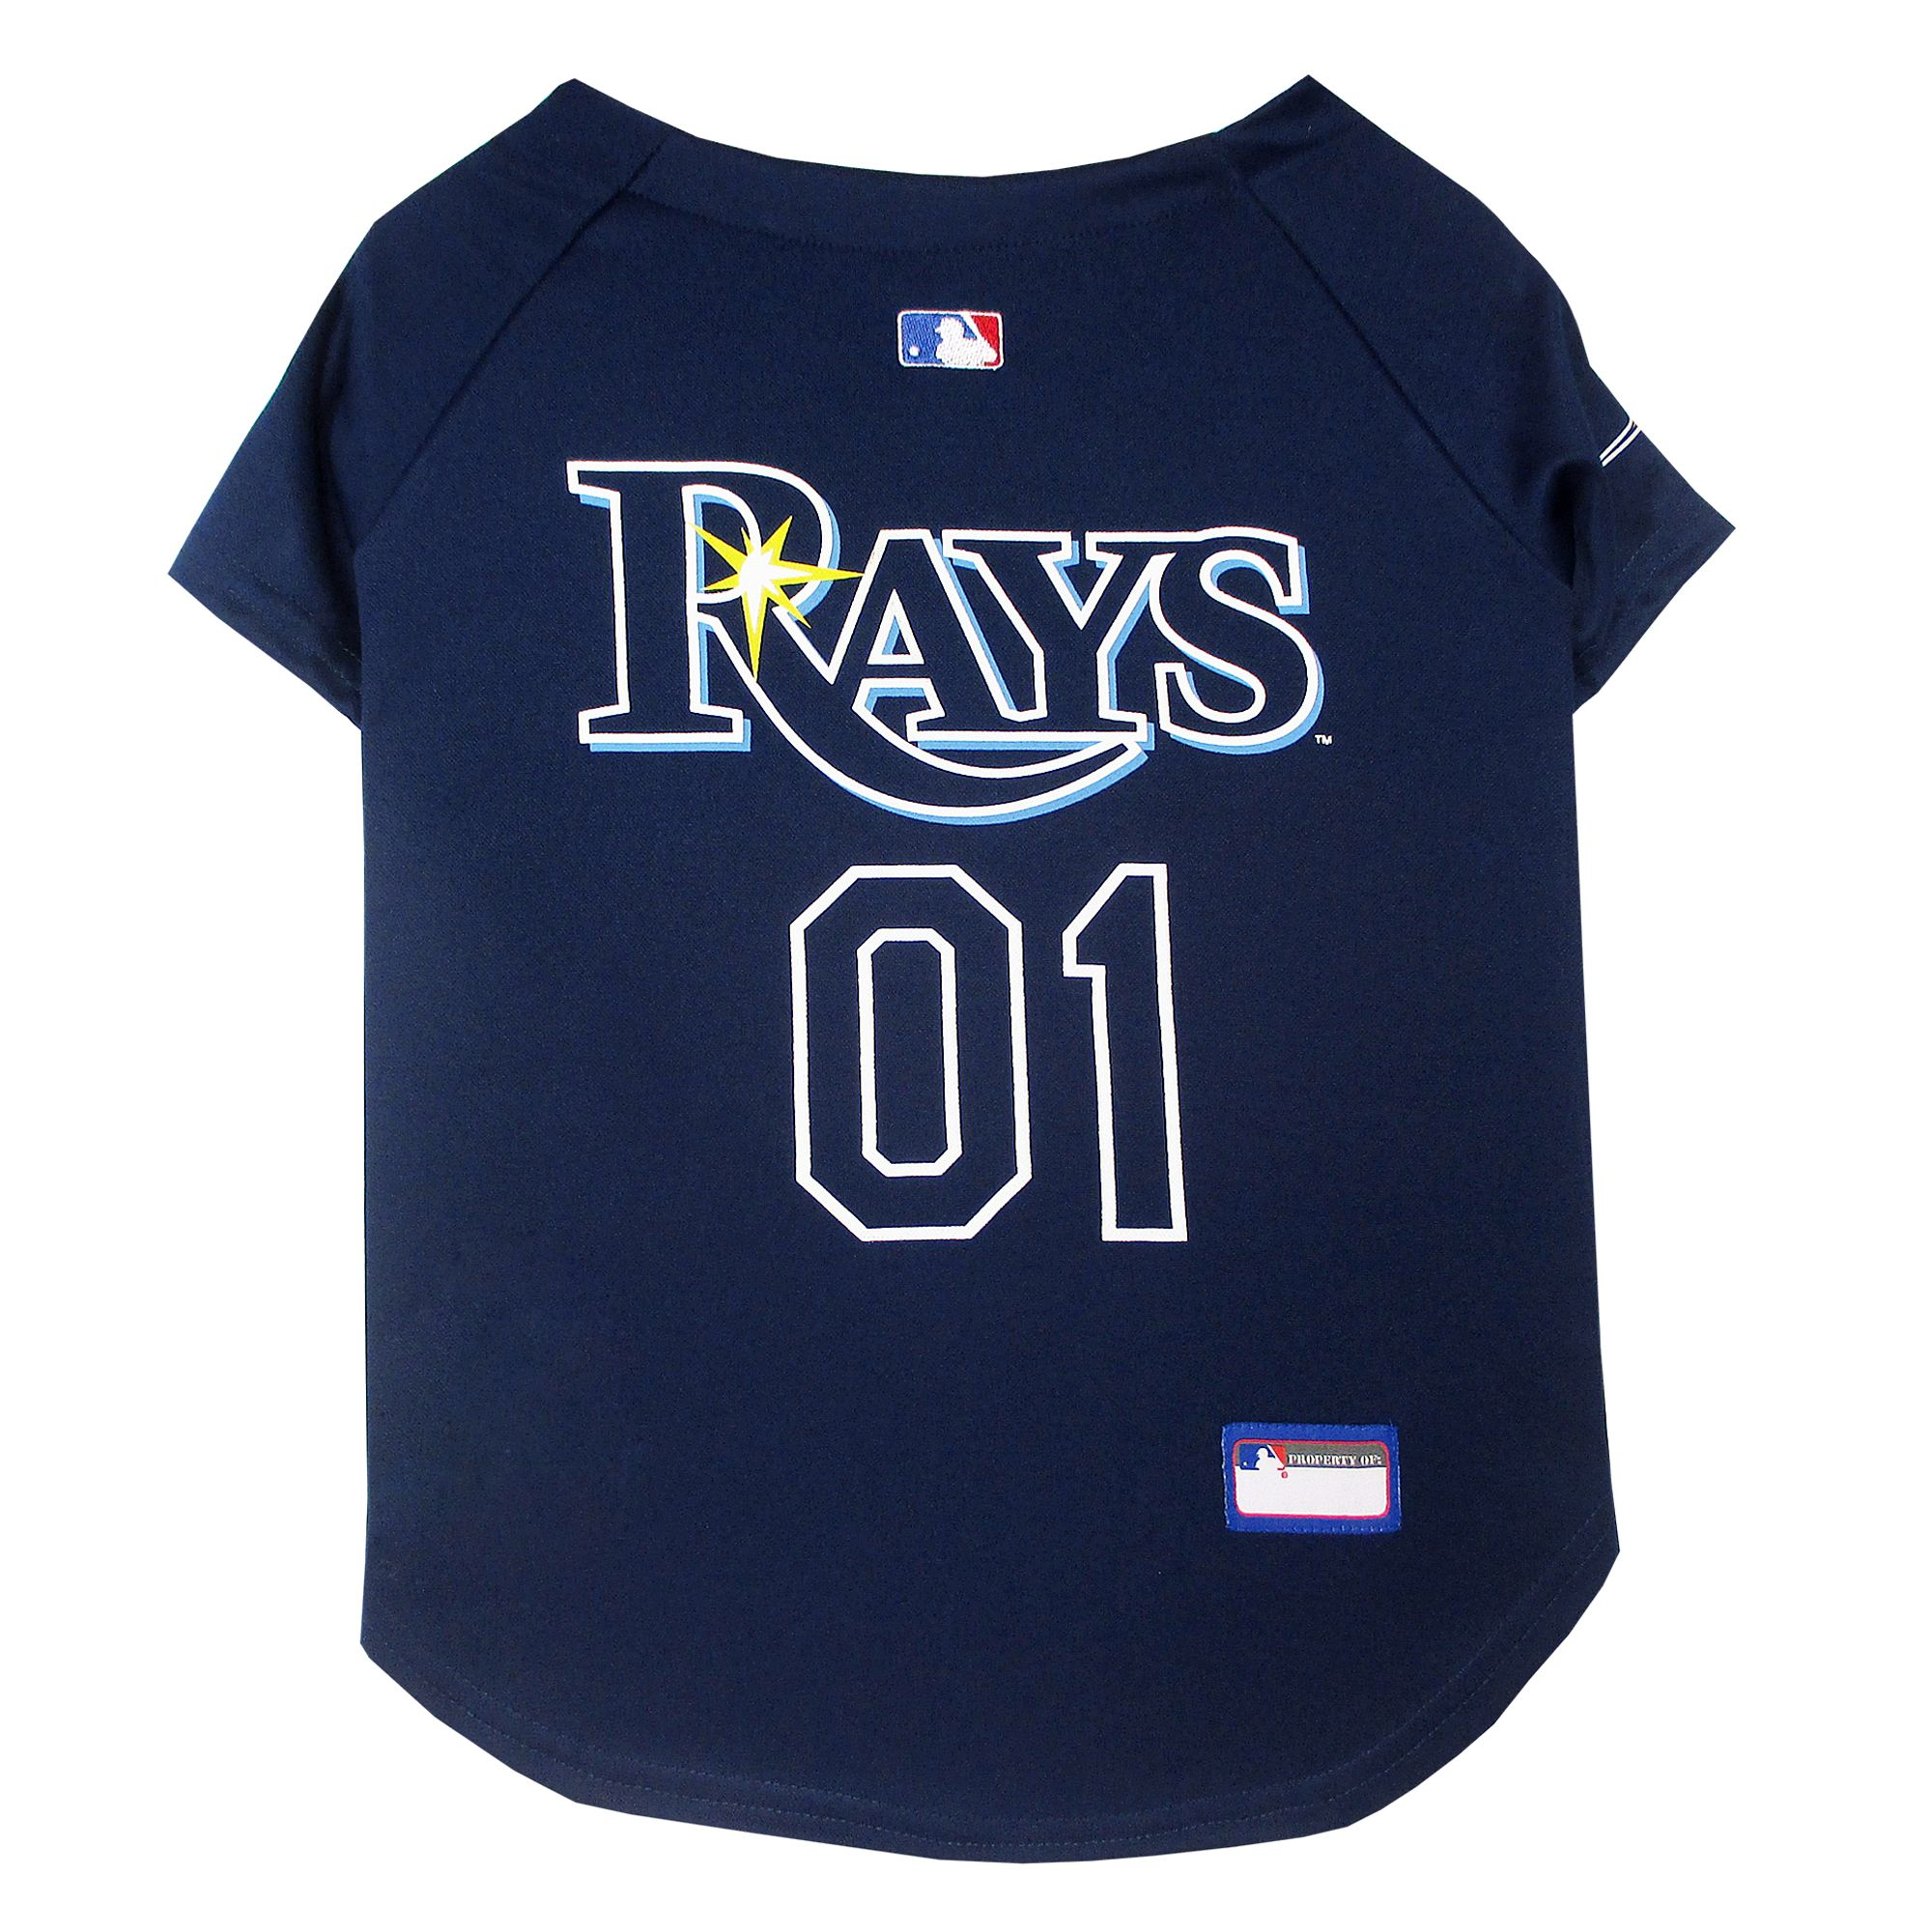 Tampa Bay Rays MLB Jersey size: X Small, Pets First 5252348